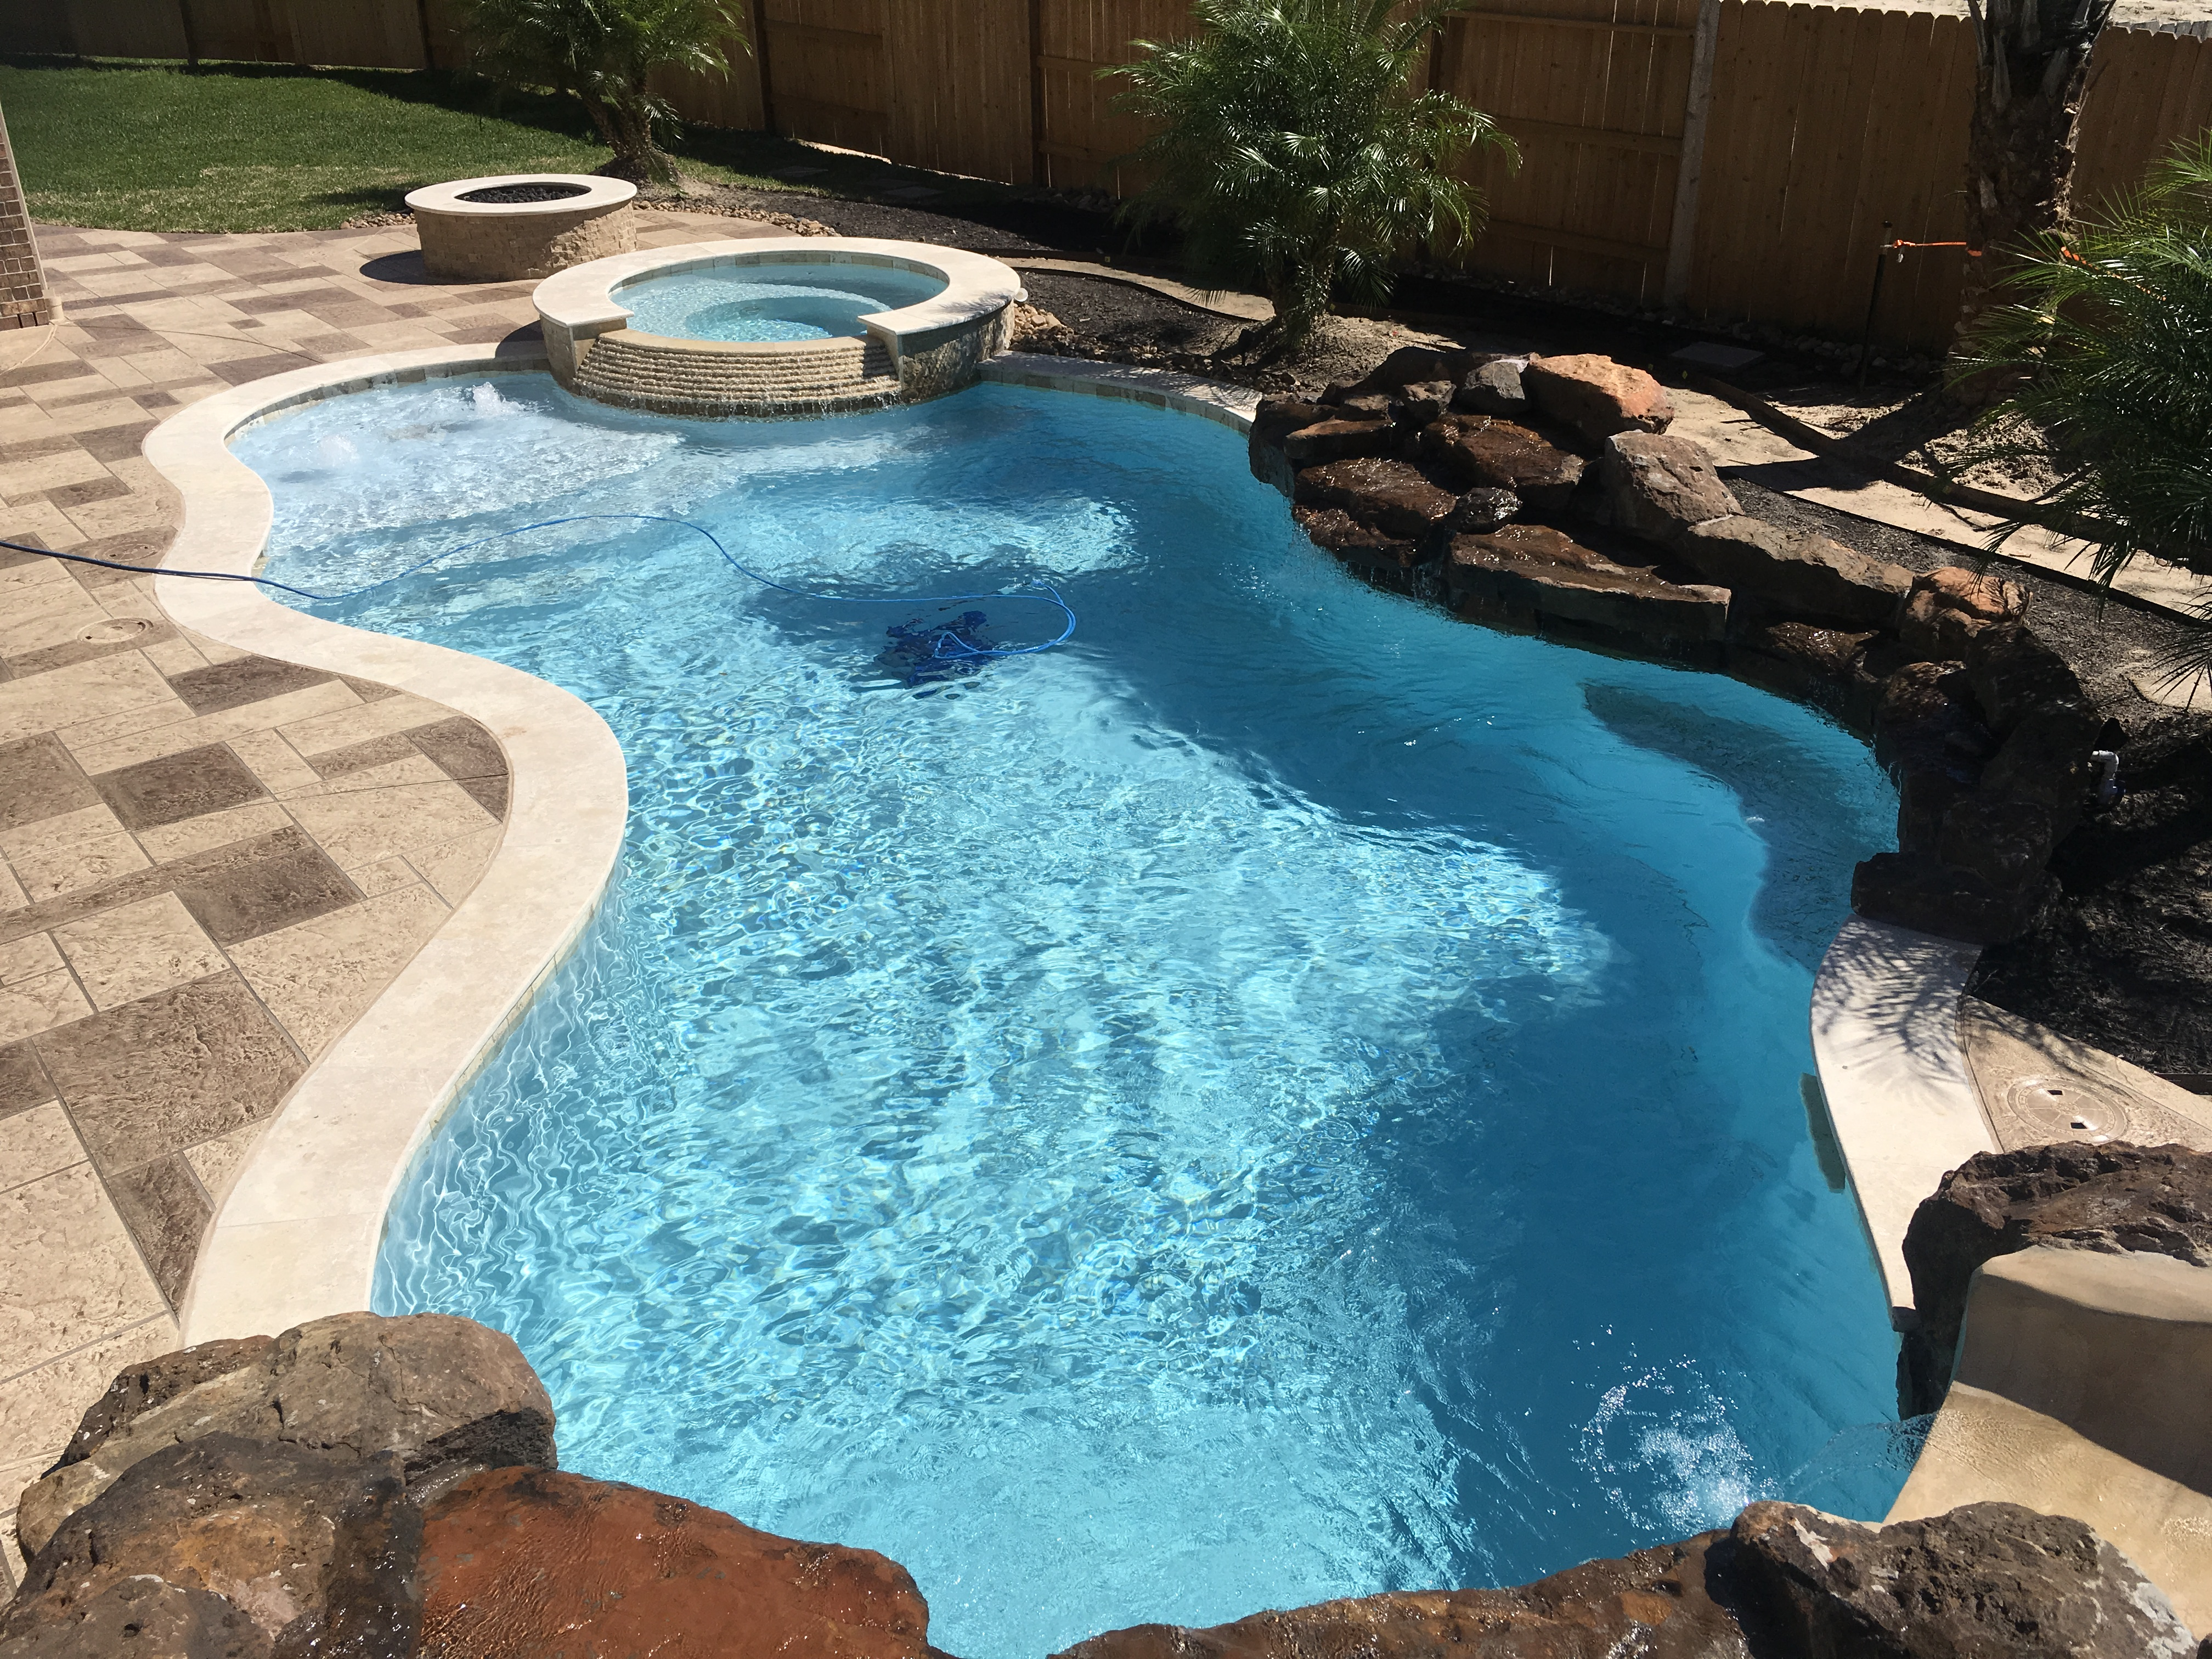 HARDSCAPES | Hardscape Services in Houston & Chattanooga